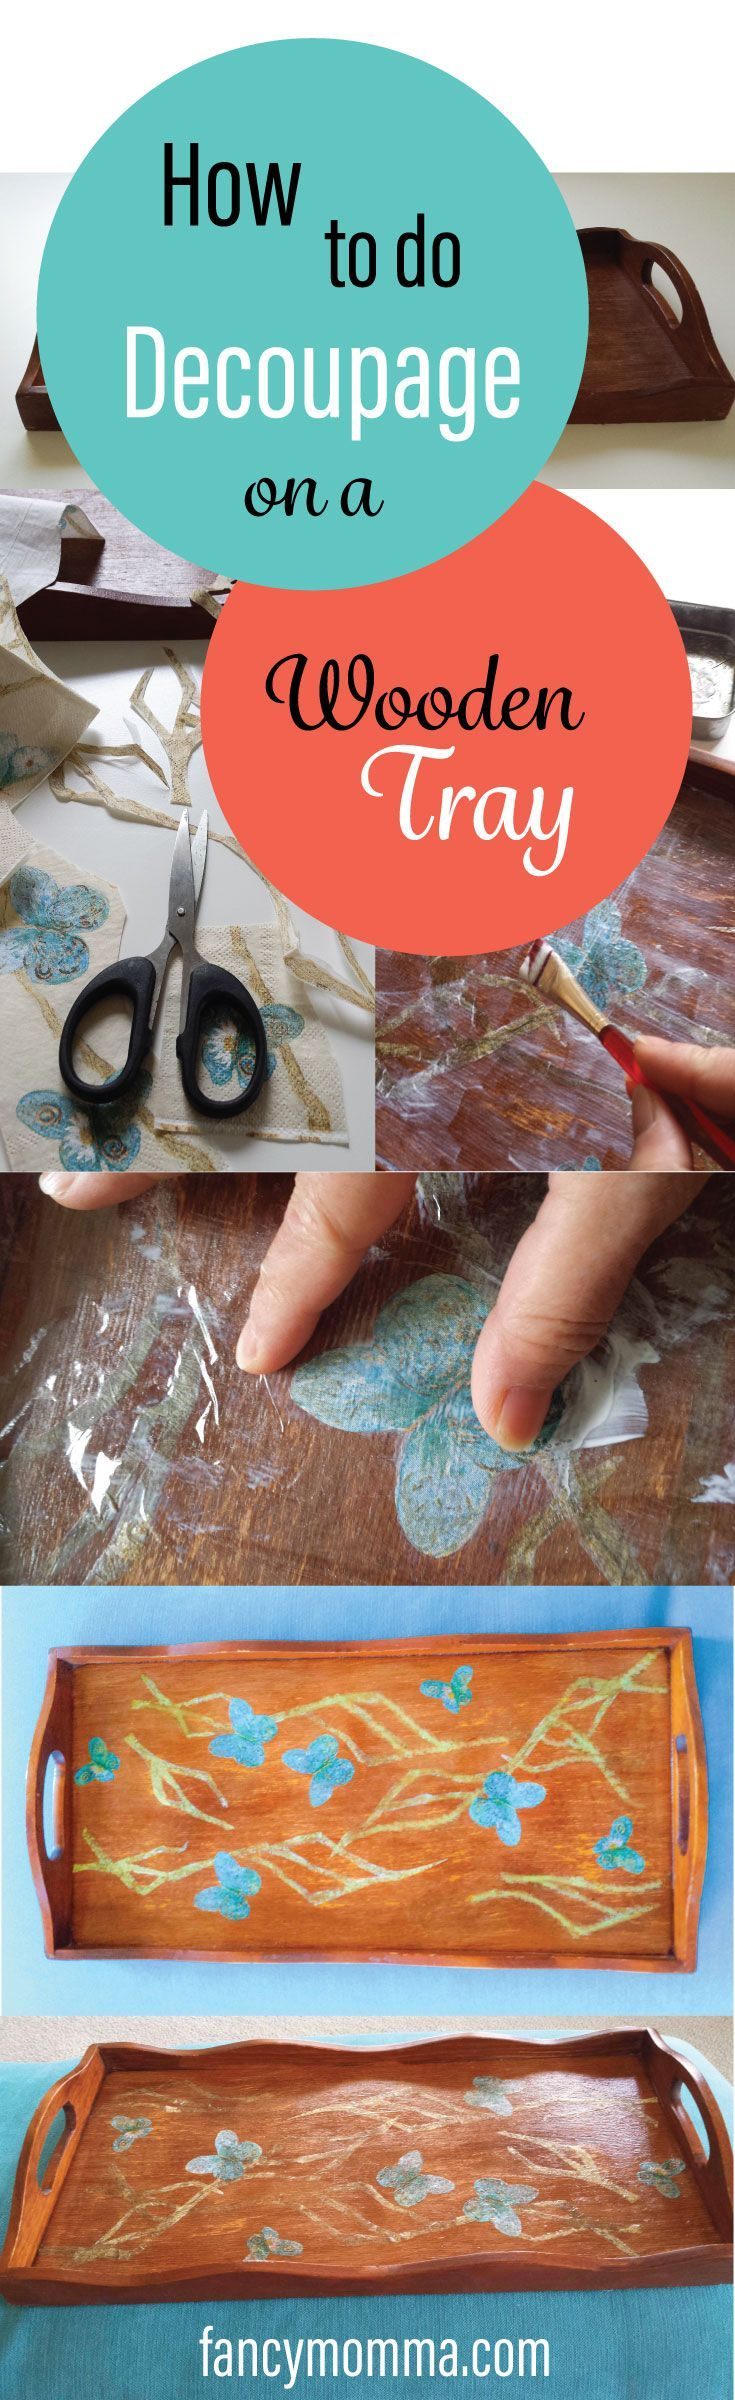 Here is what you can do to a dull and old wooden tray- decoupage. There is a way to pretty up that tray and it is a very easy DIY.